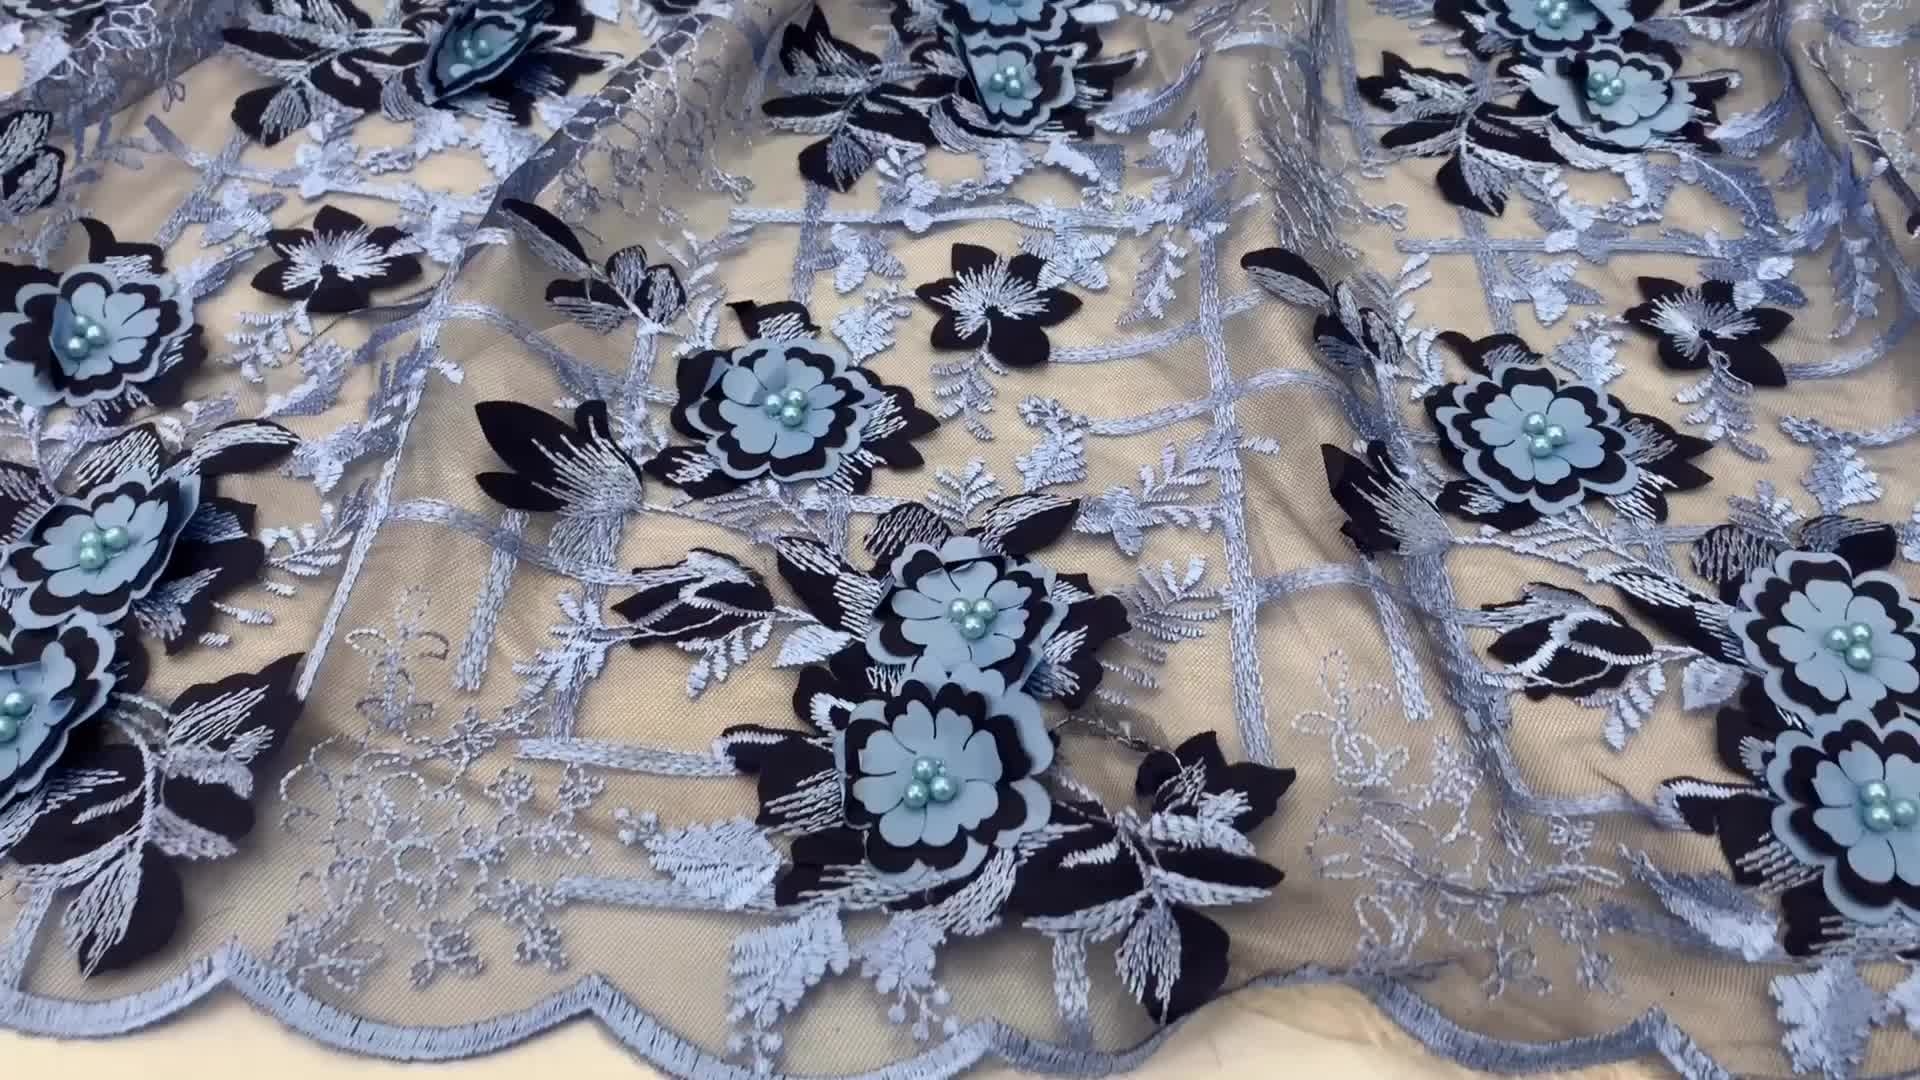 blue 3D Flowers Lace Embroidery Lace Fabric for Women Wedding Dress High Quality African French Tulle Lace Fabric XZ2802B